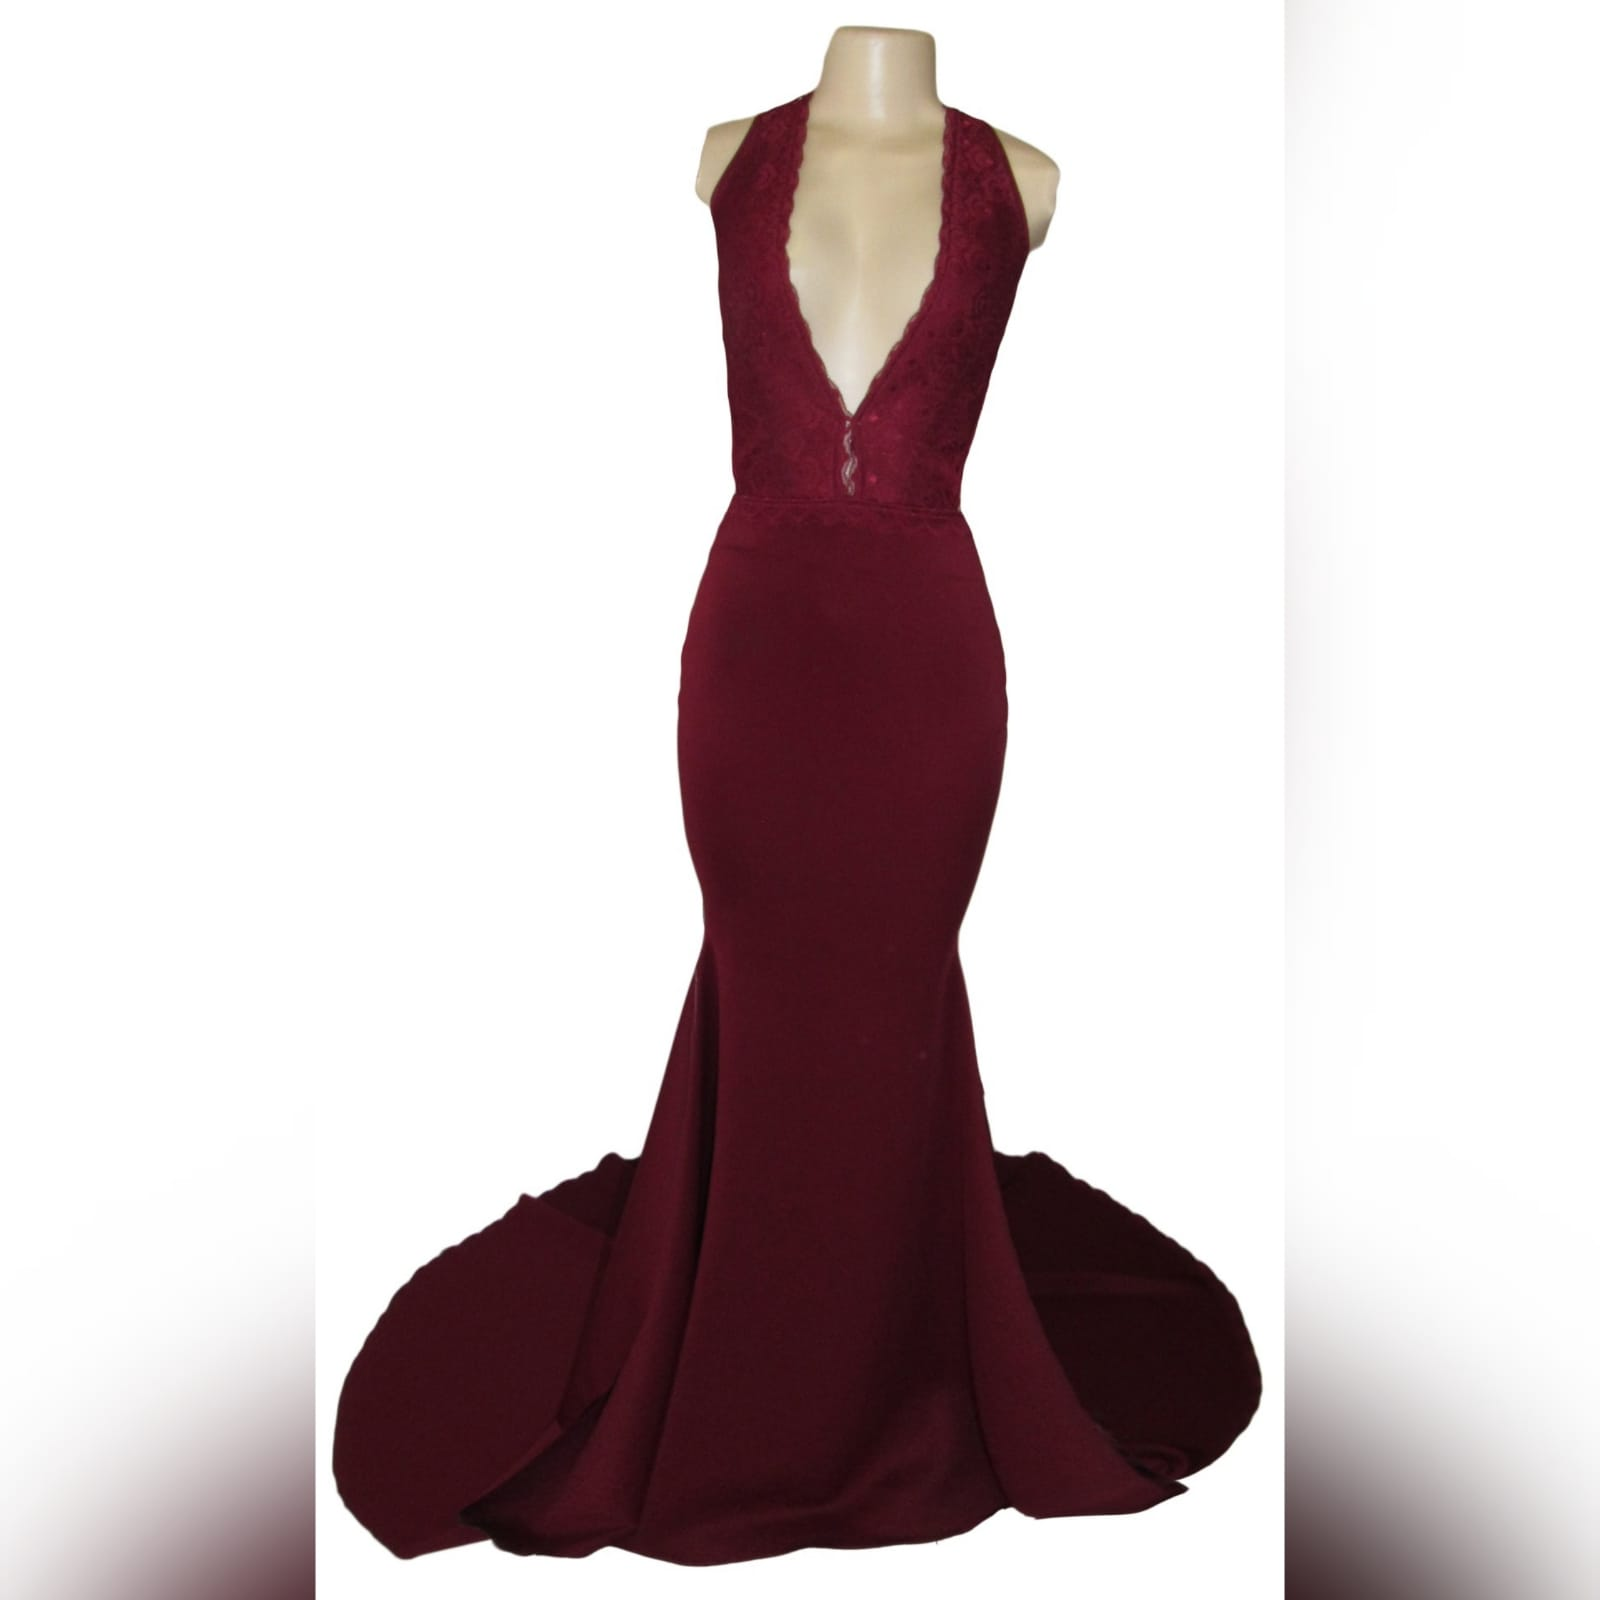 Maroon plunging neckline lace bodice matric dance dress 3 maroon plunging neckline lace bodice, soft mermaid matric dress with a train and an open back detailed with lace straps.